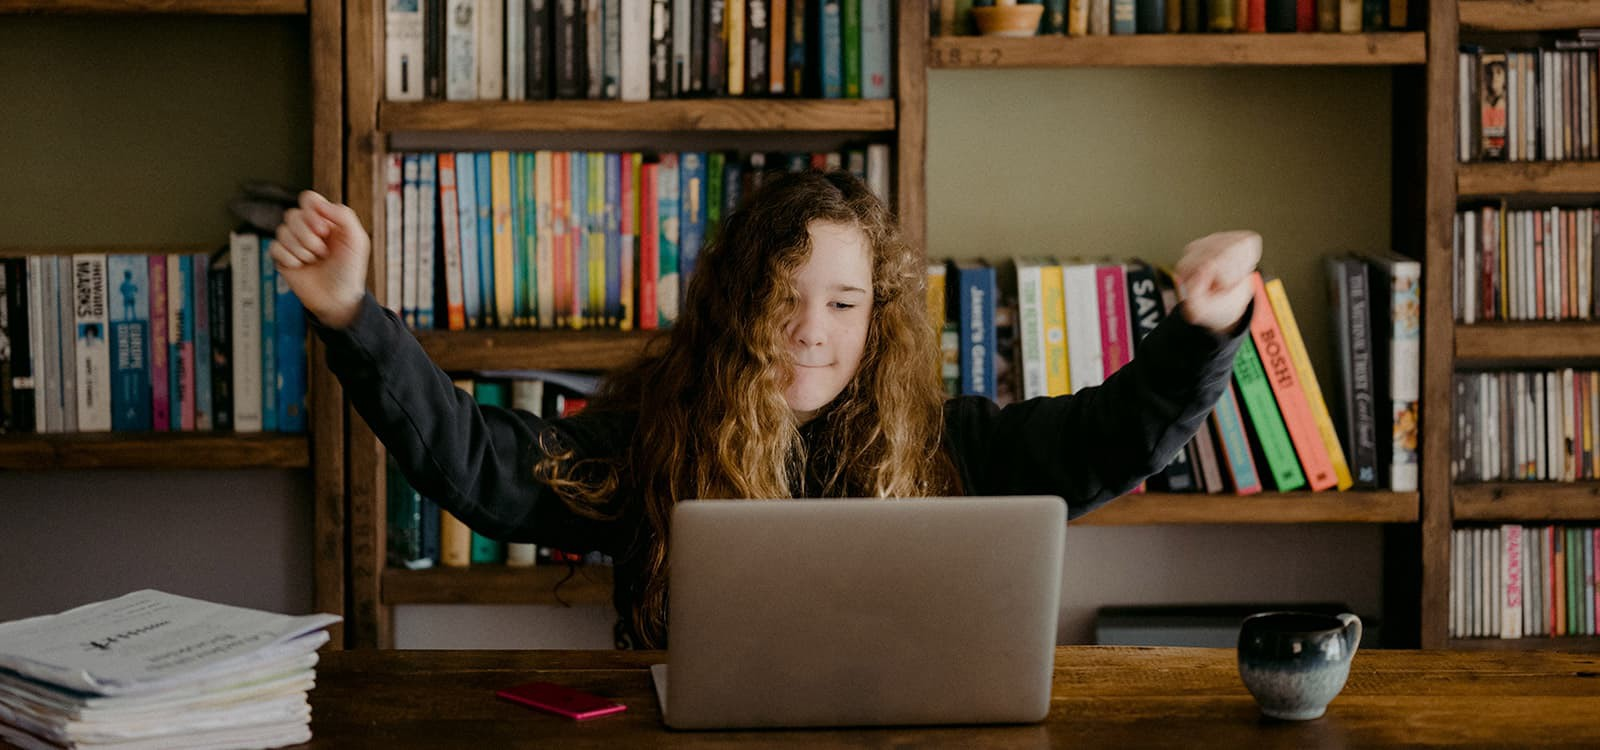 Find a Perfect Online Course and Complete It—5 Helpful Tips